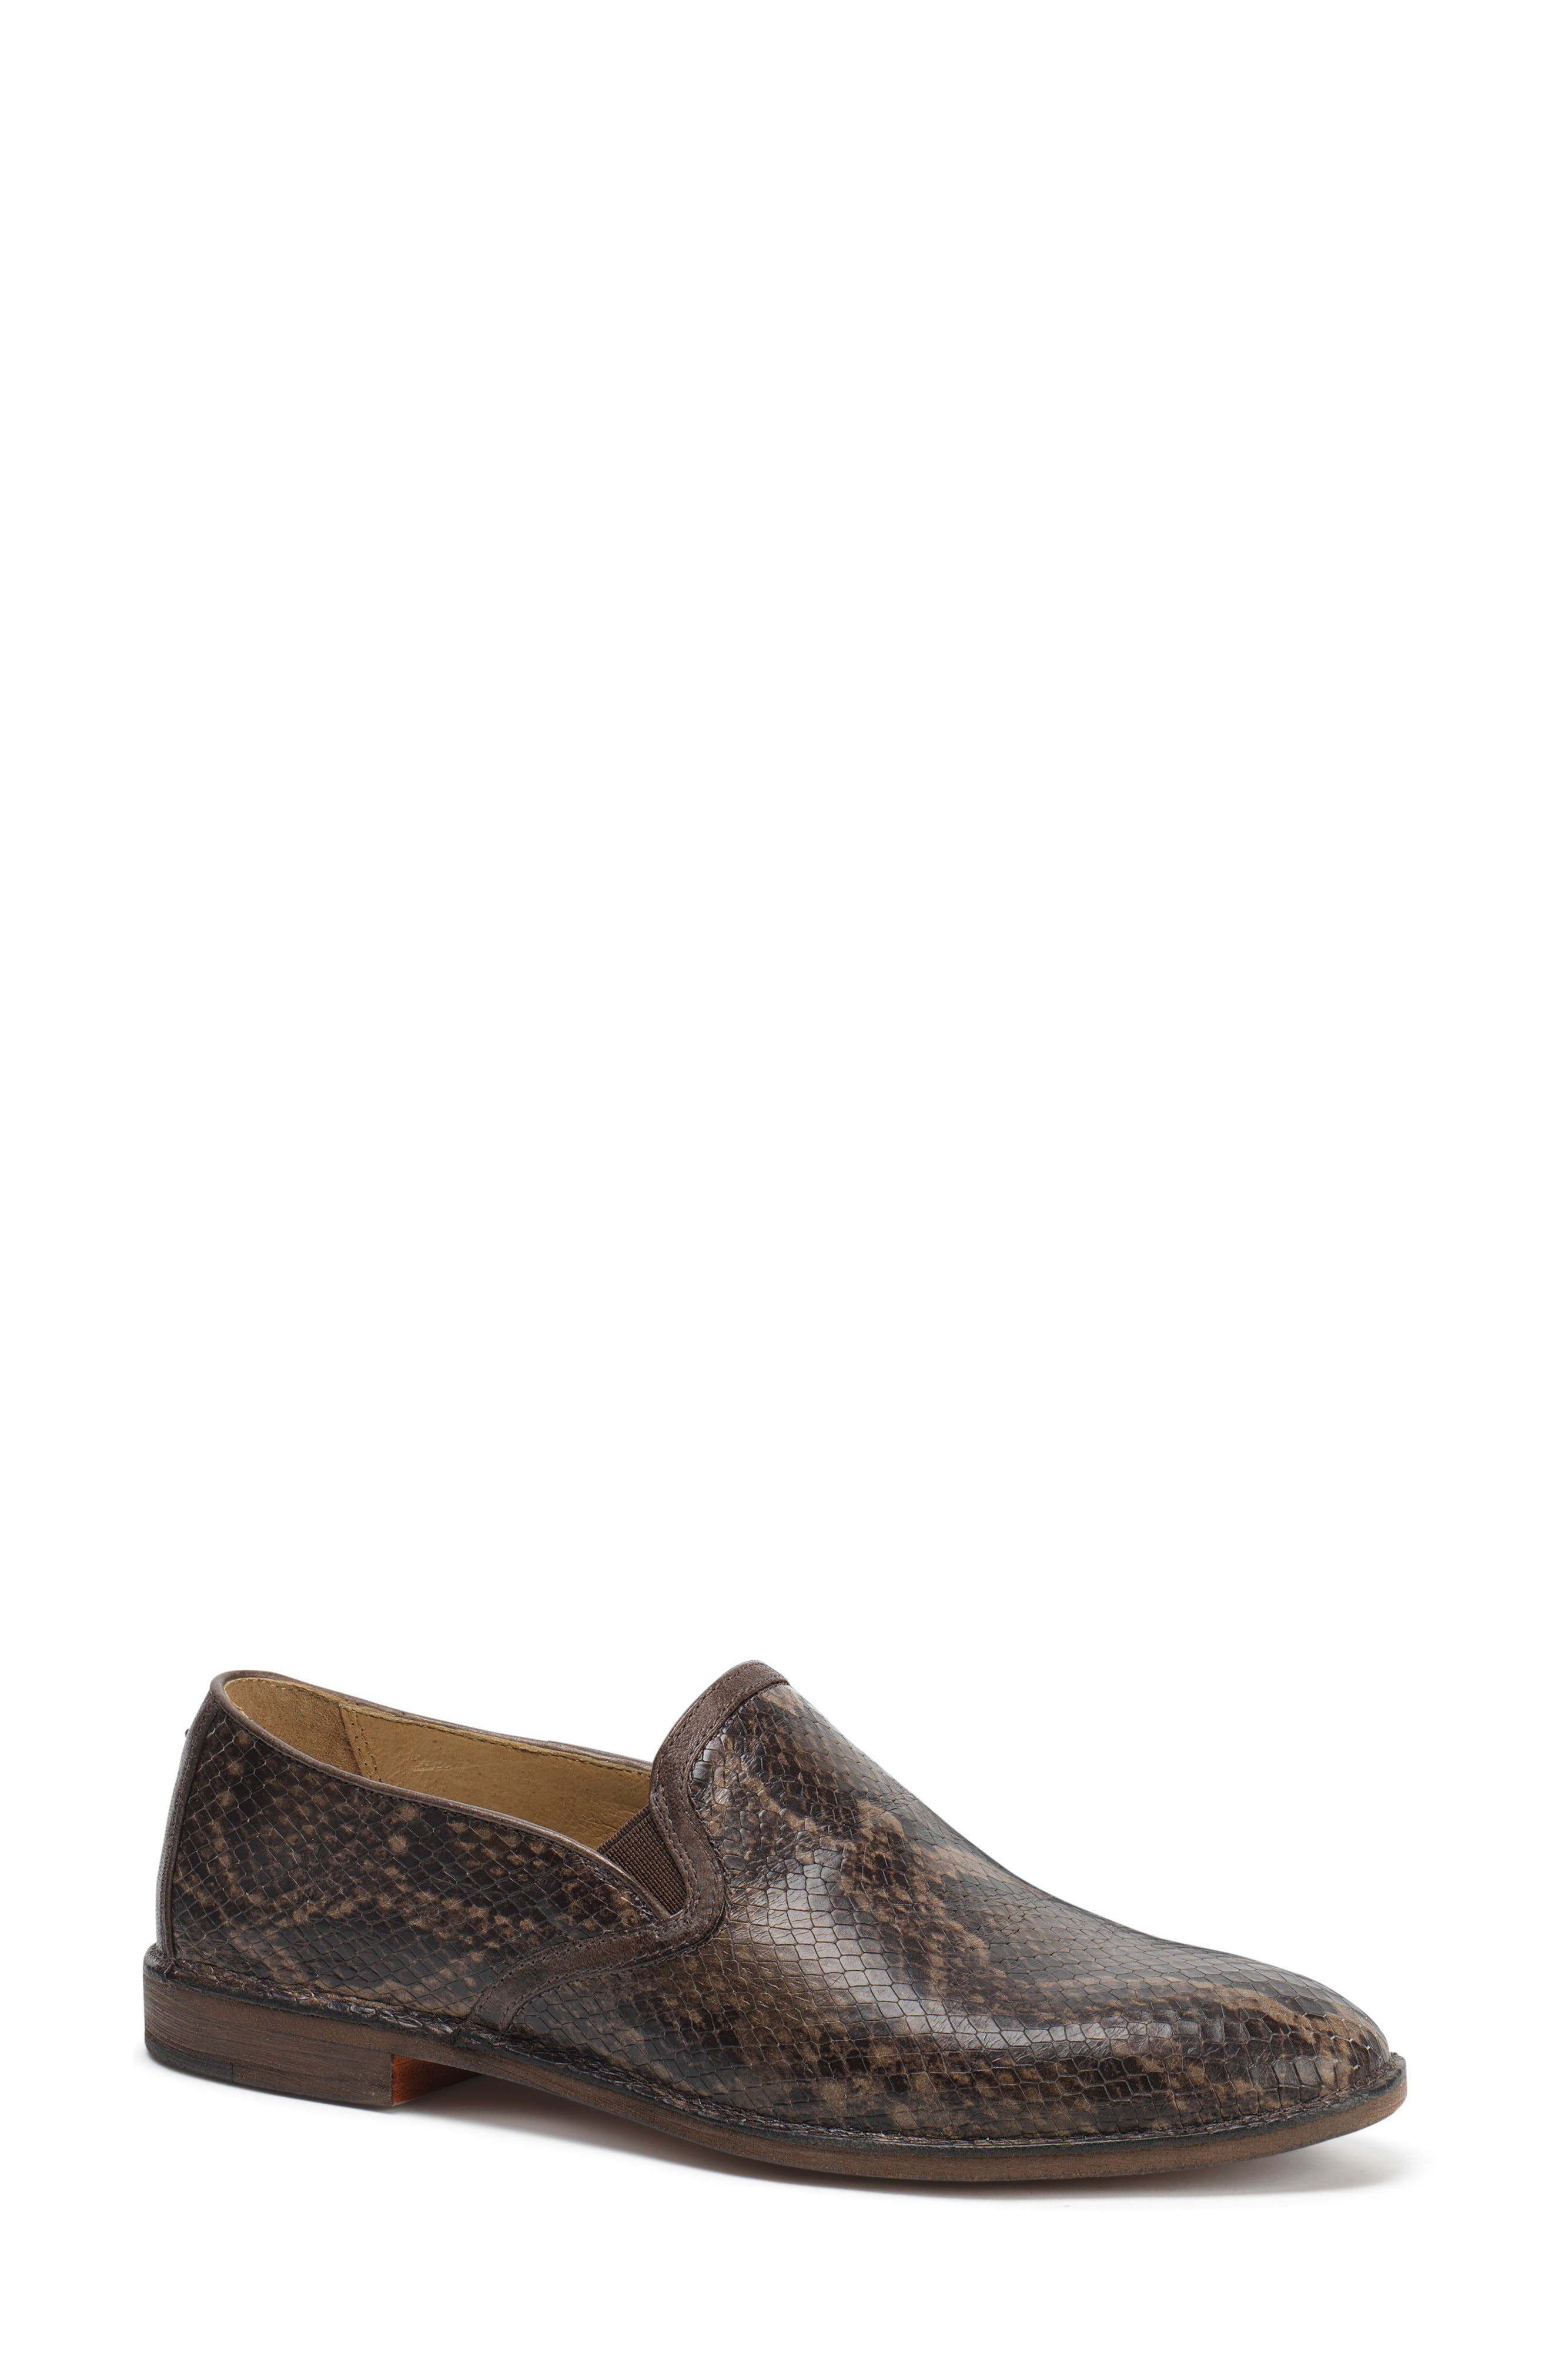 'Ali' Flat,                             Main thumbnail 1, color,                             Brown Print Leather